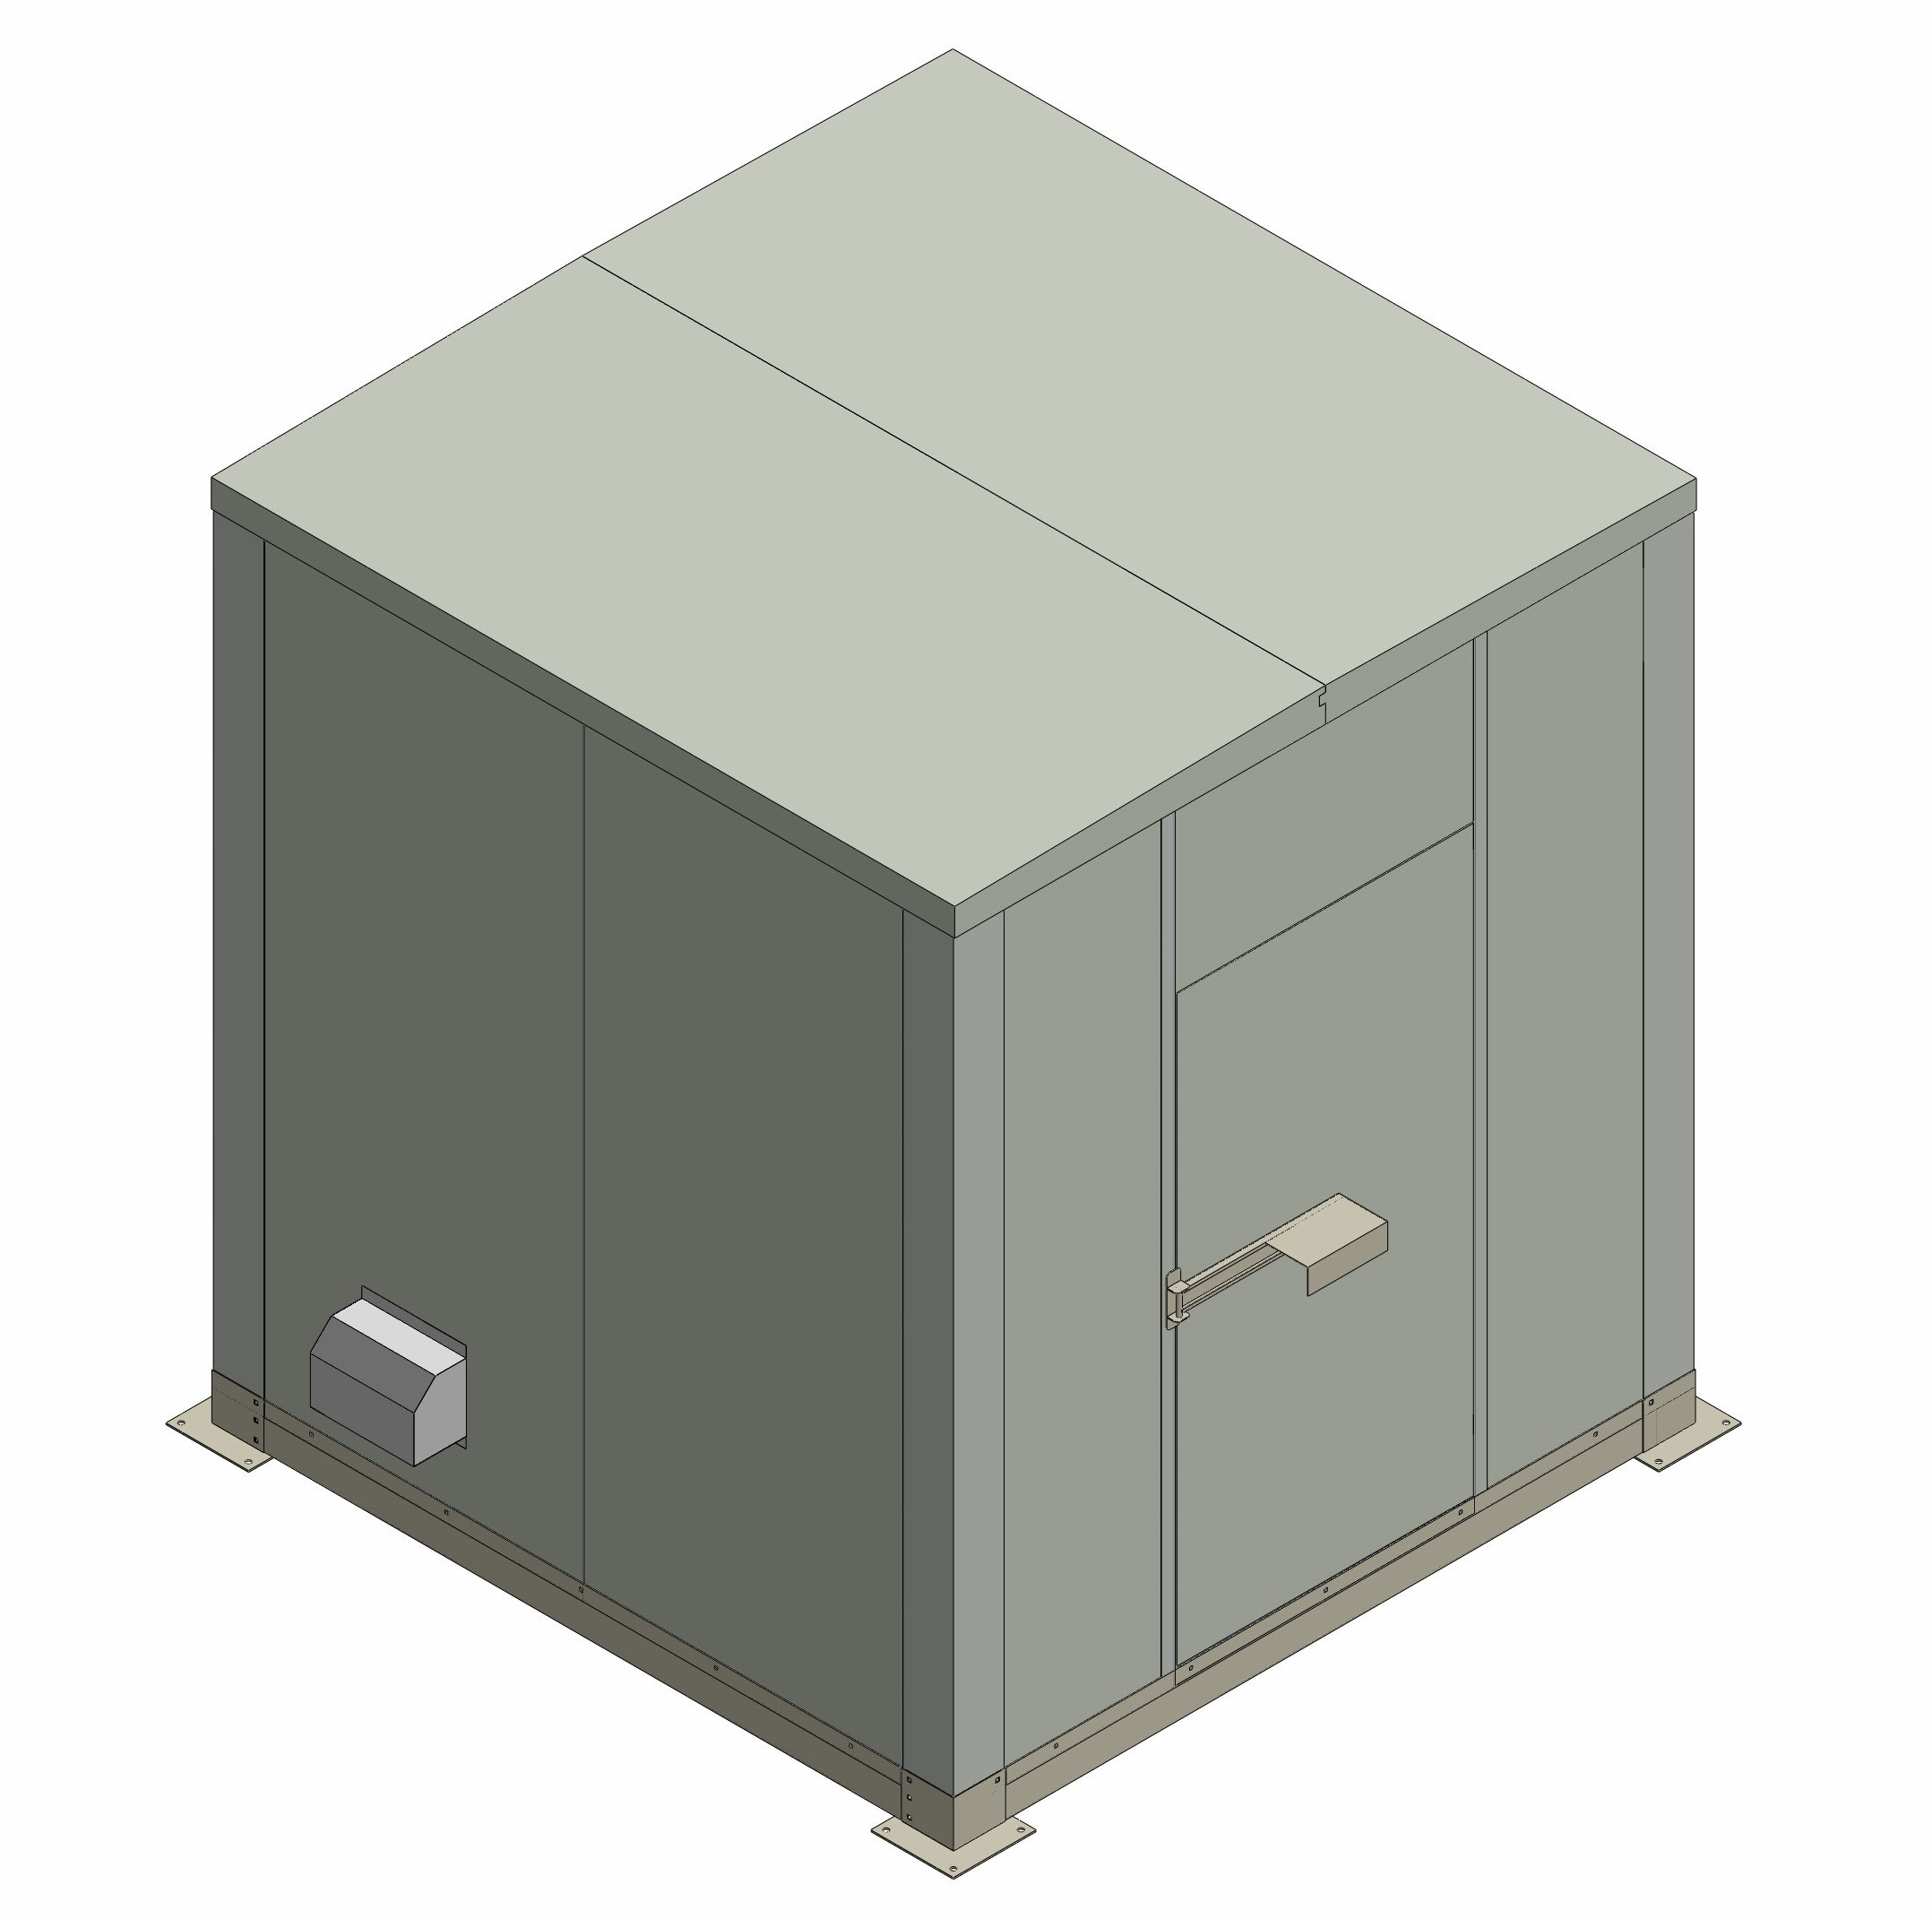 Shelter 3C-M2700W2640D2040T60